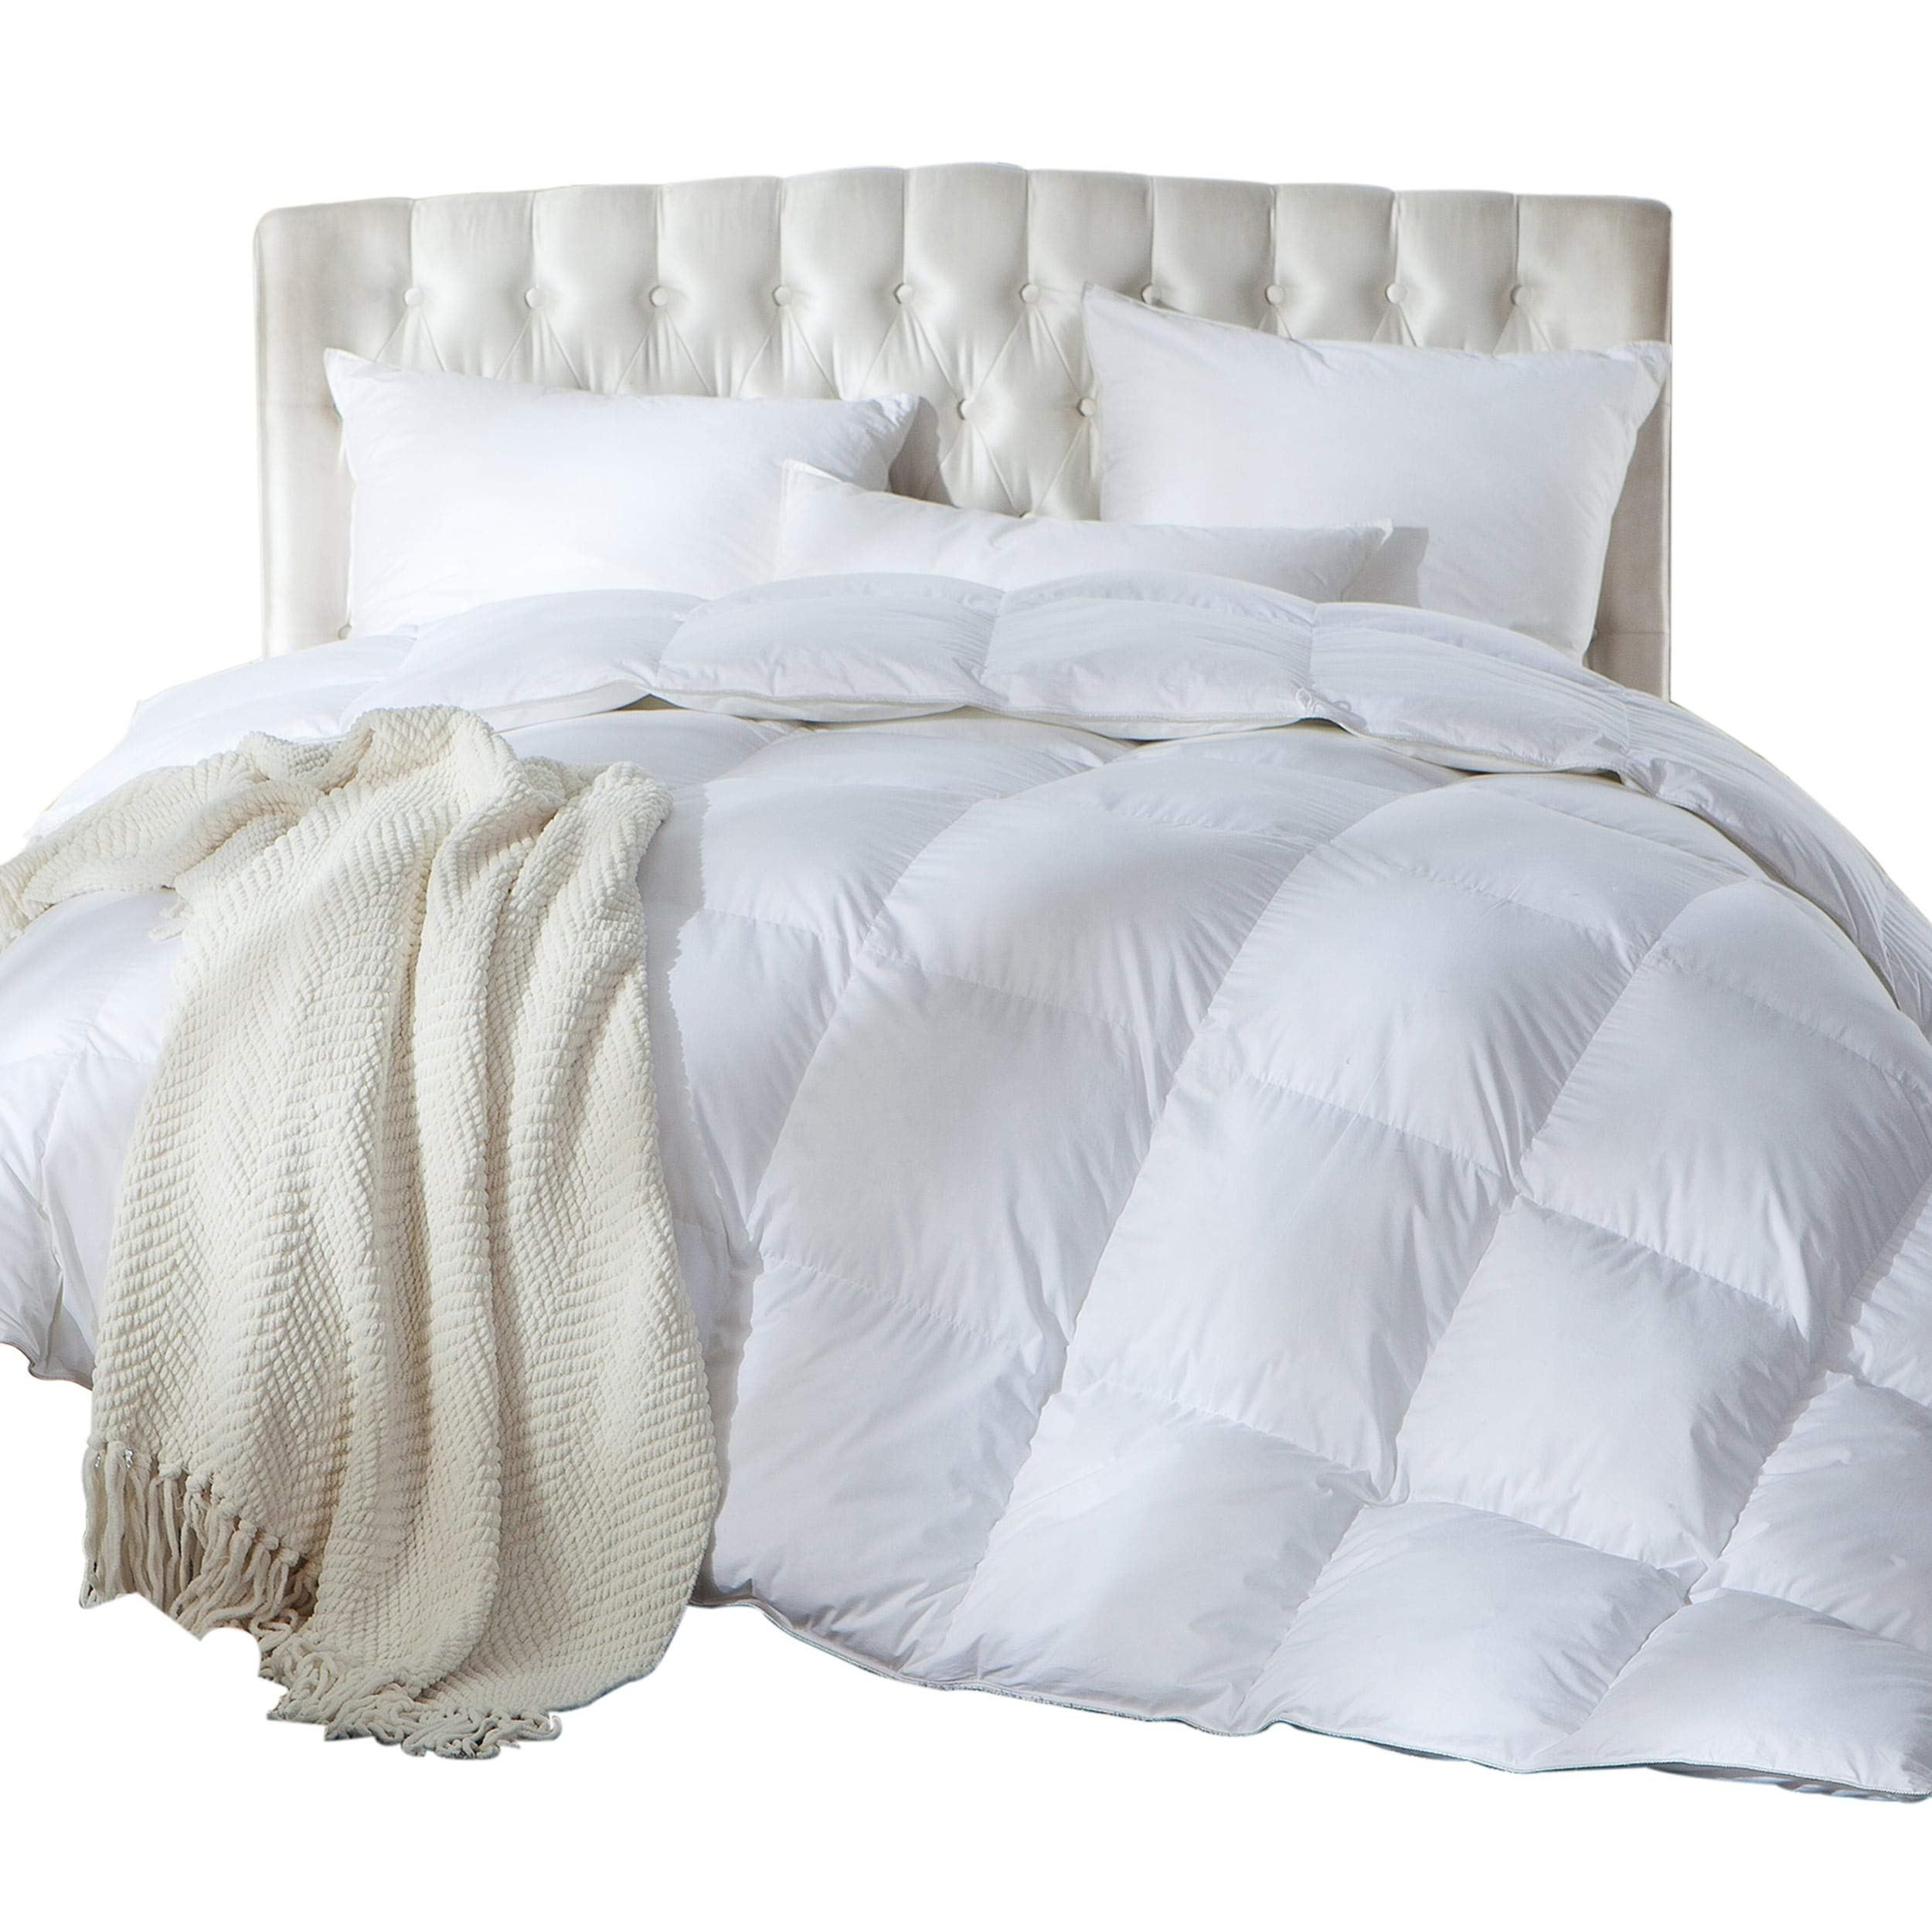 Luxurious Siberian Goose Luxurious Siberian Goose Down Comforter